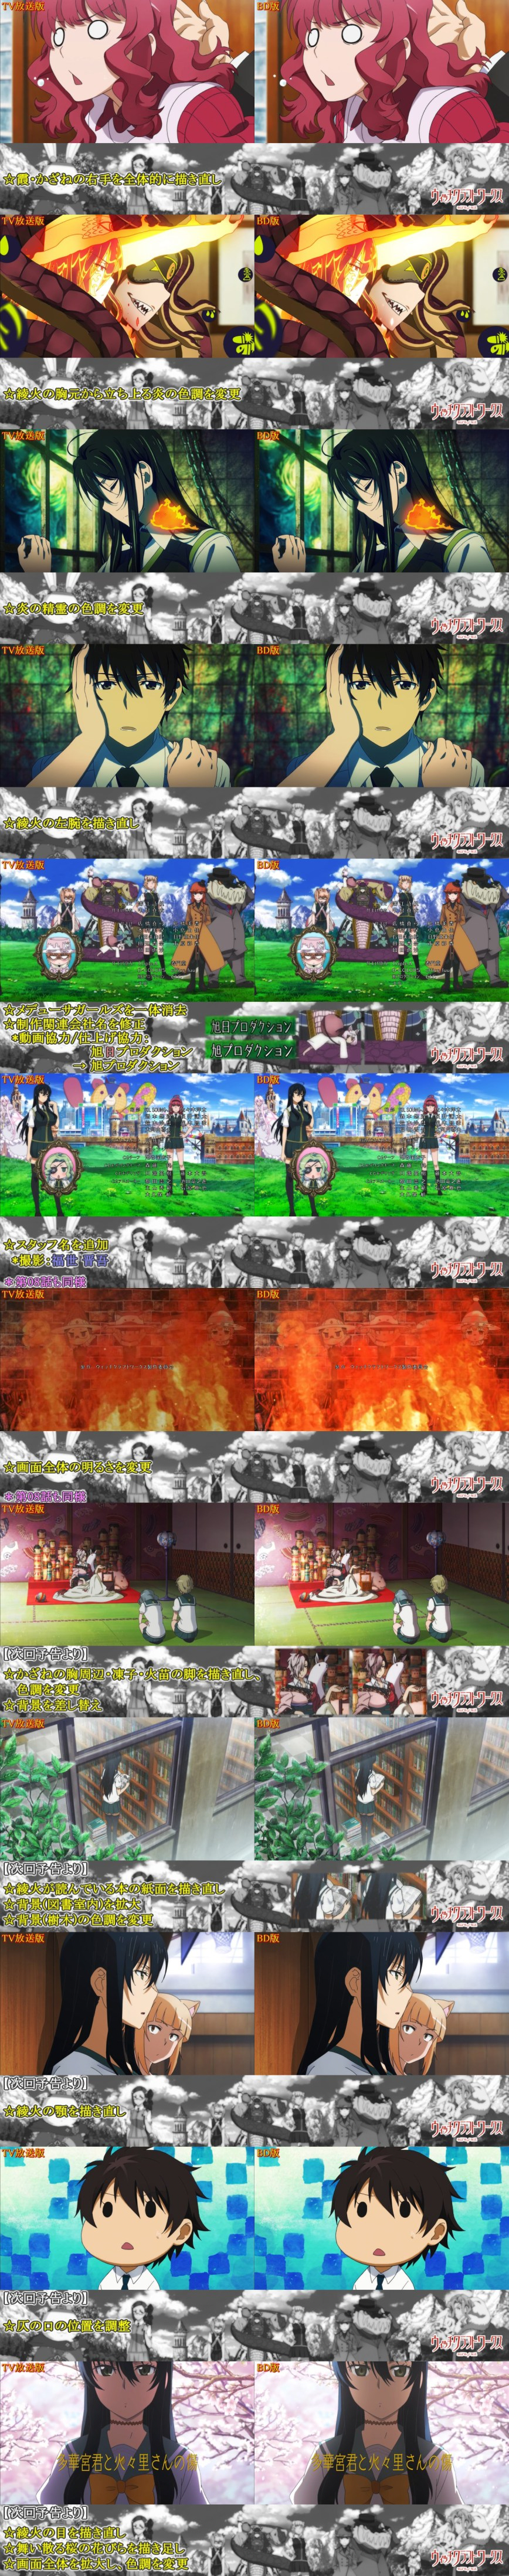 Witch-Craft-Works-TV-and-Blu-ray-Comparisons-Episodes-7-2